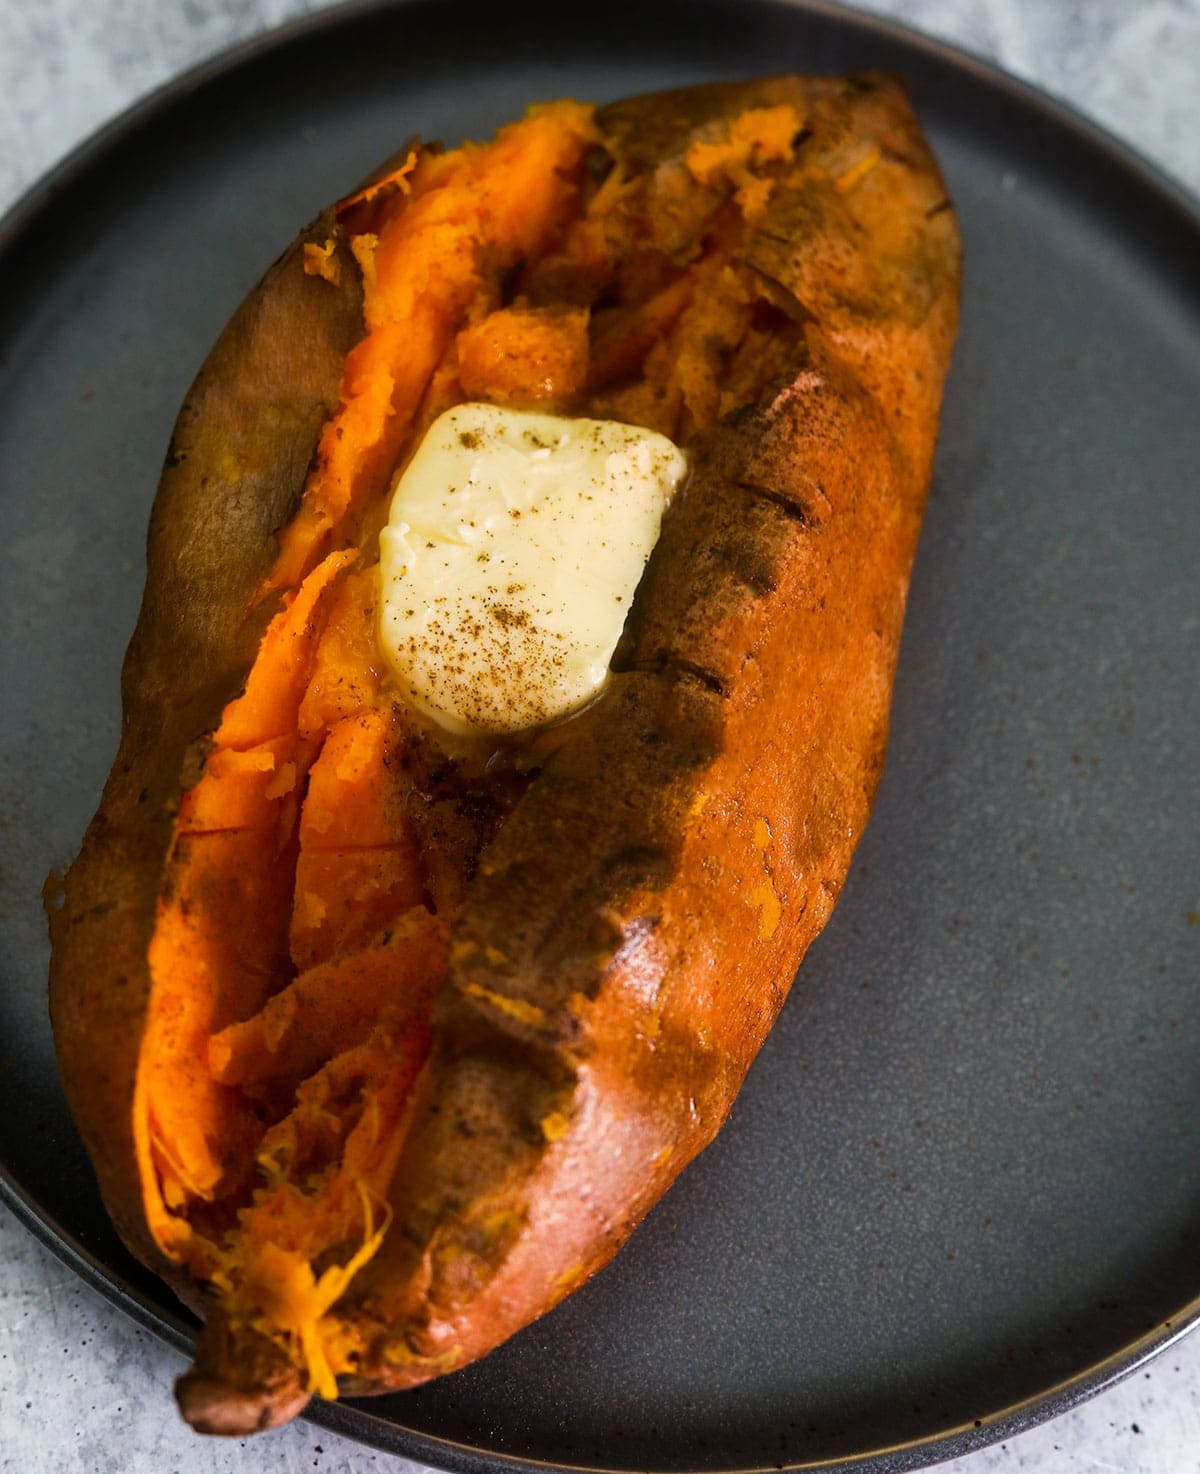 close up of baked sweet potato in air fryer on a grey plate